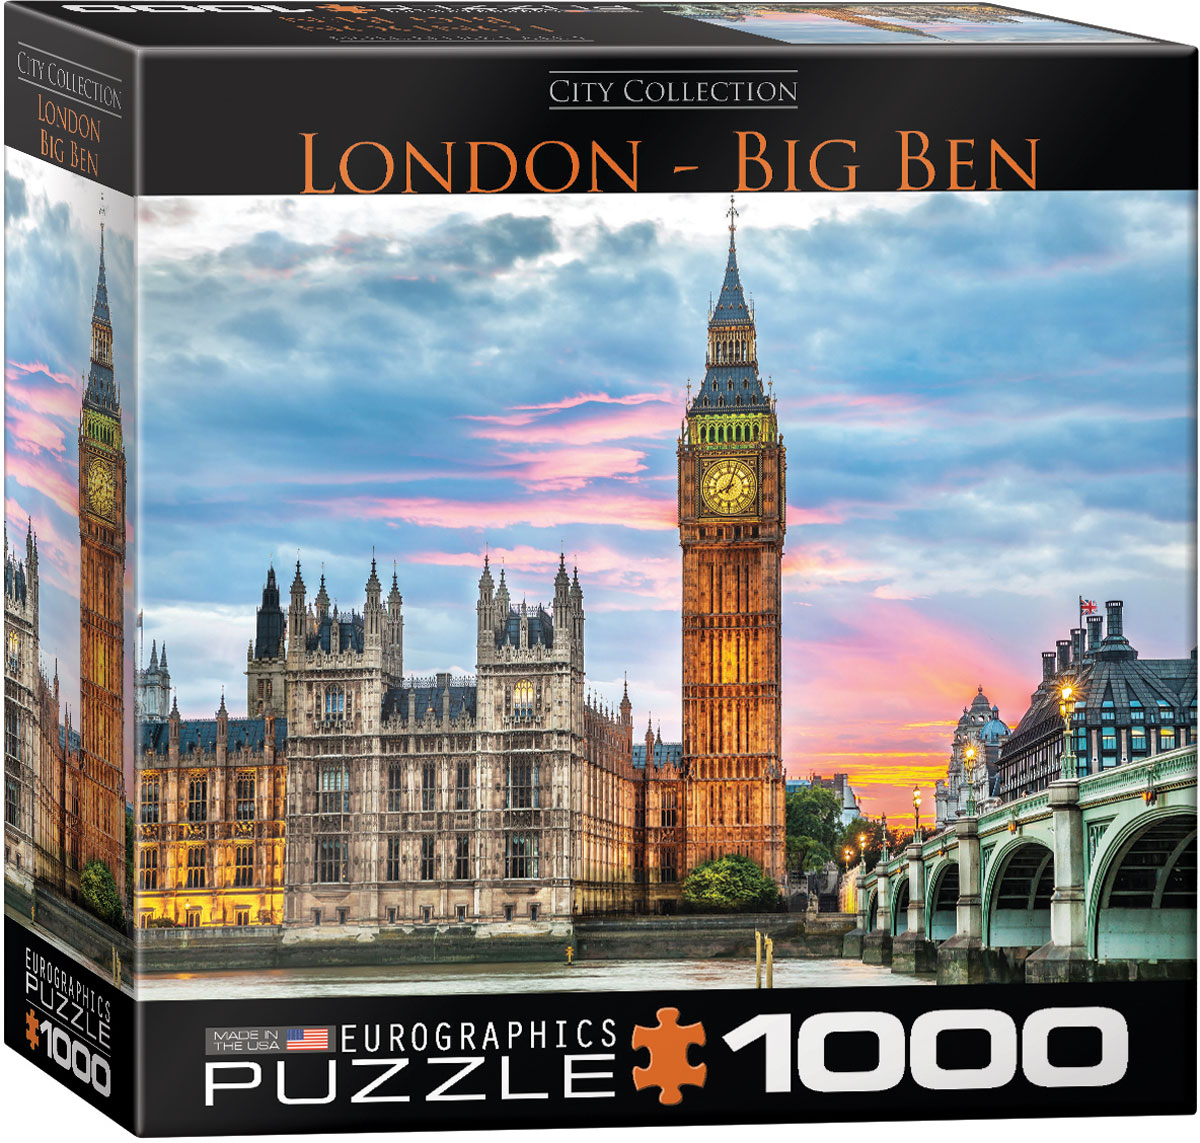 eurographics-london-big-ben-1000-teile-puzzle-eurographics-8000-0764